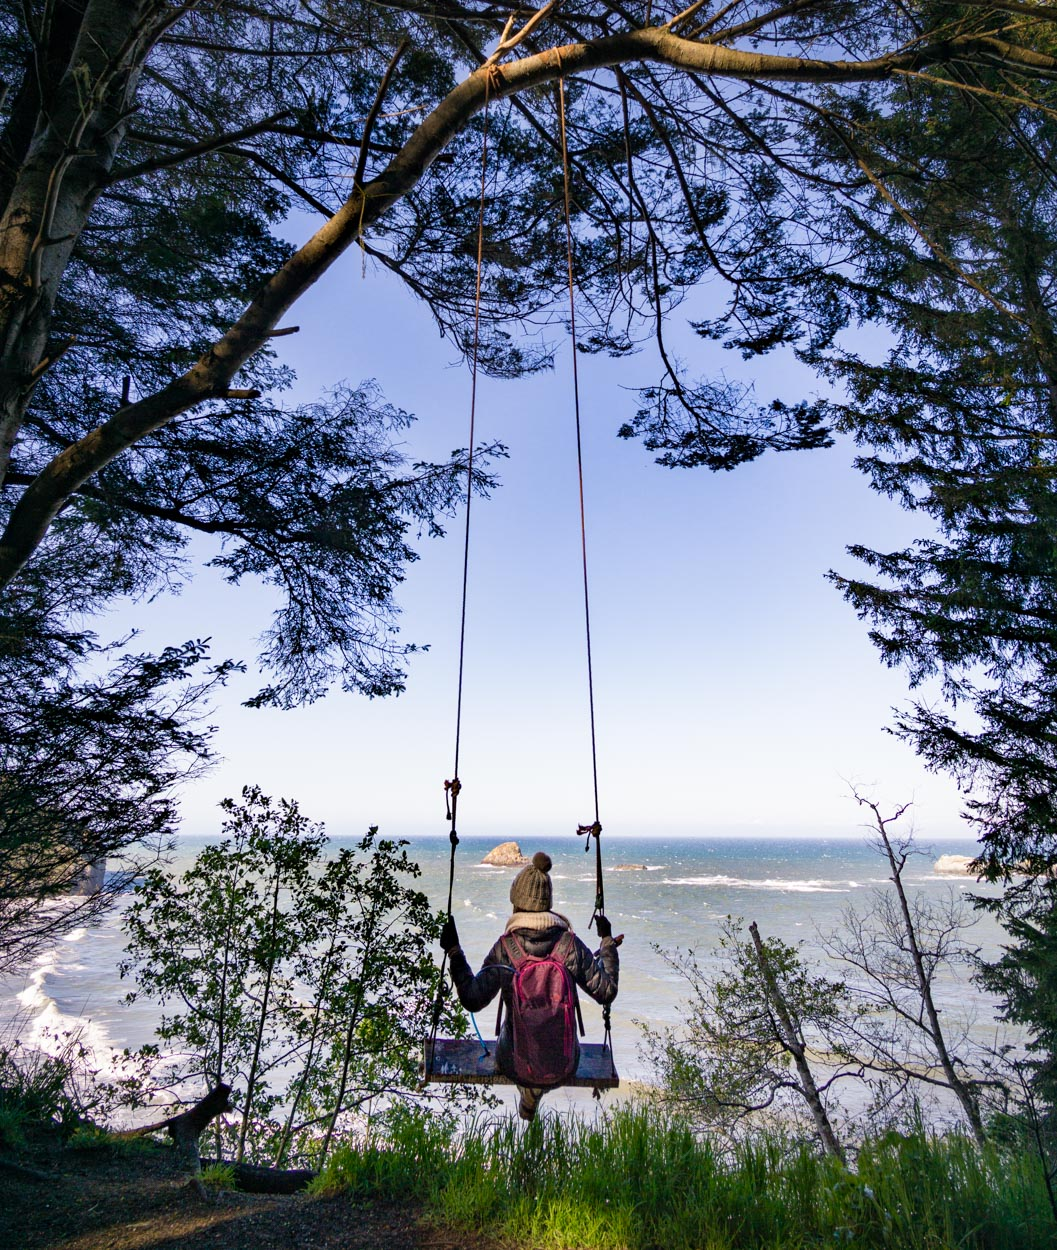 The perfect coastal tree swing - thank you to the kind soul who put it up